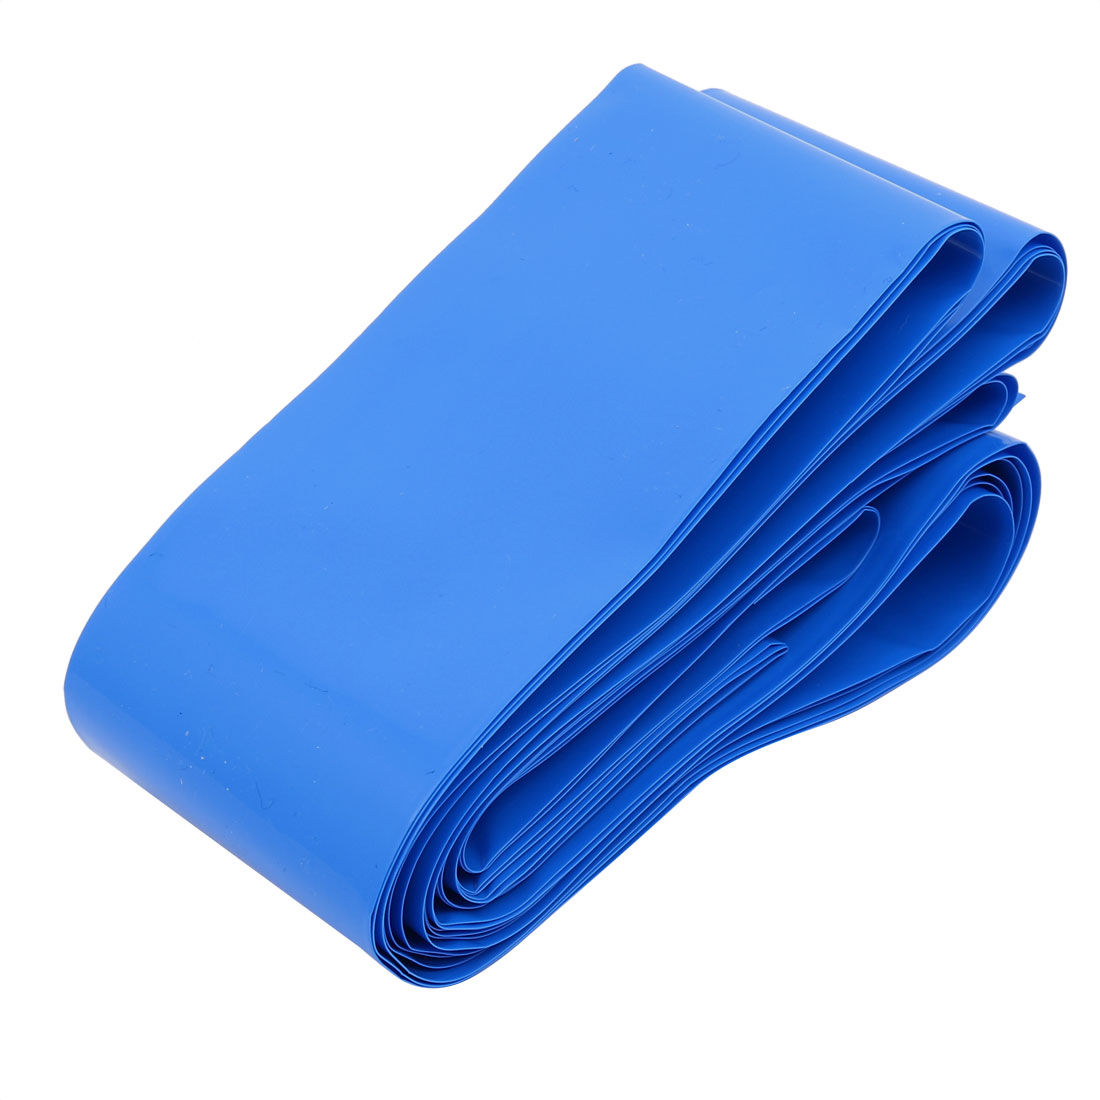 70mm Flat Width 5M 16.5Ft Length PVC Sleeving Tube Blue for 4 x 18650 Batteries